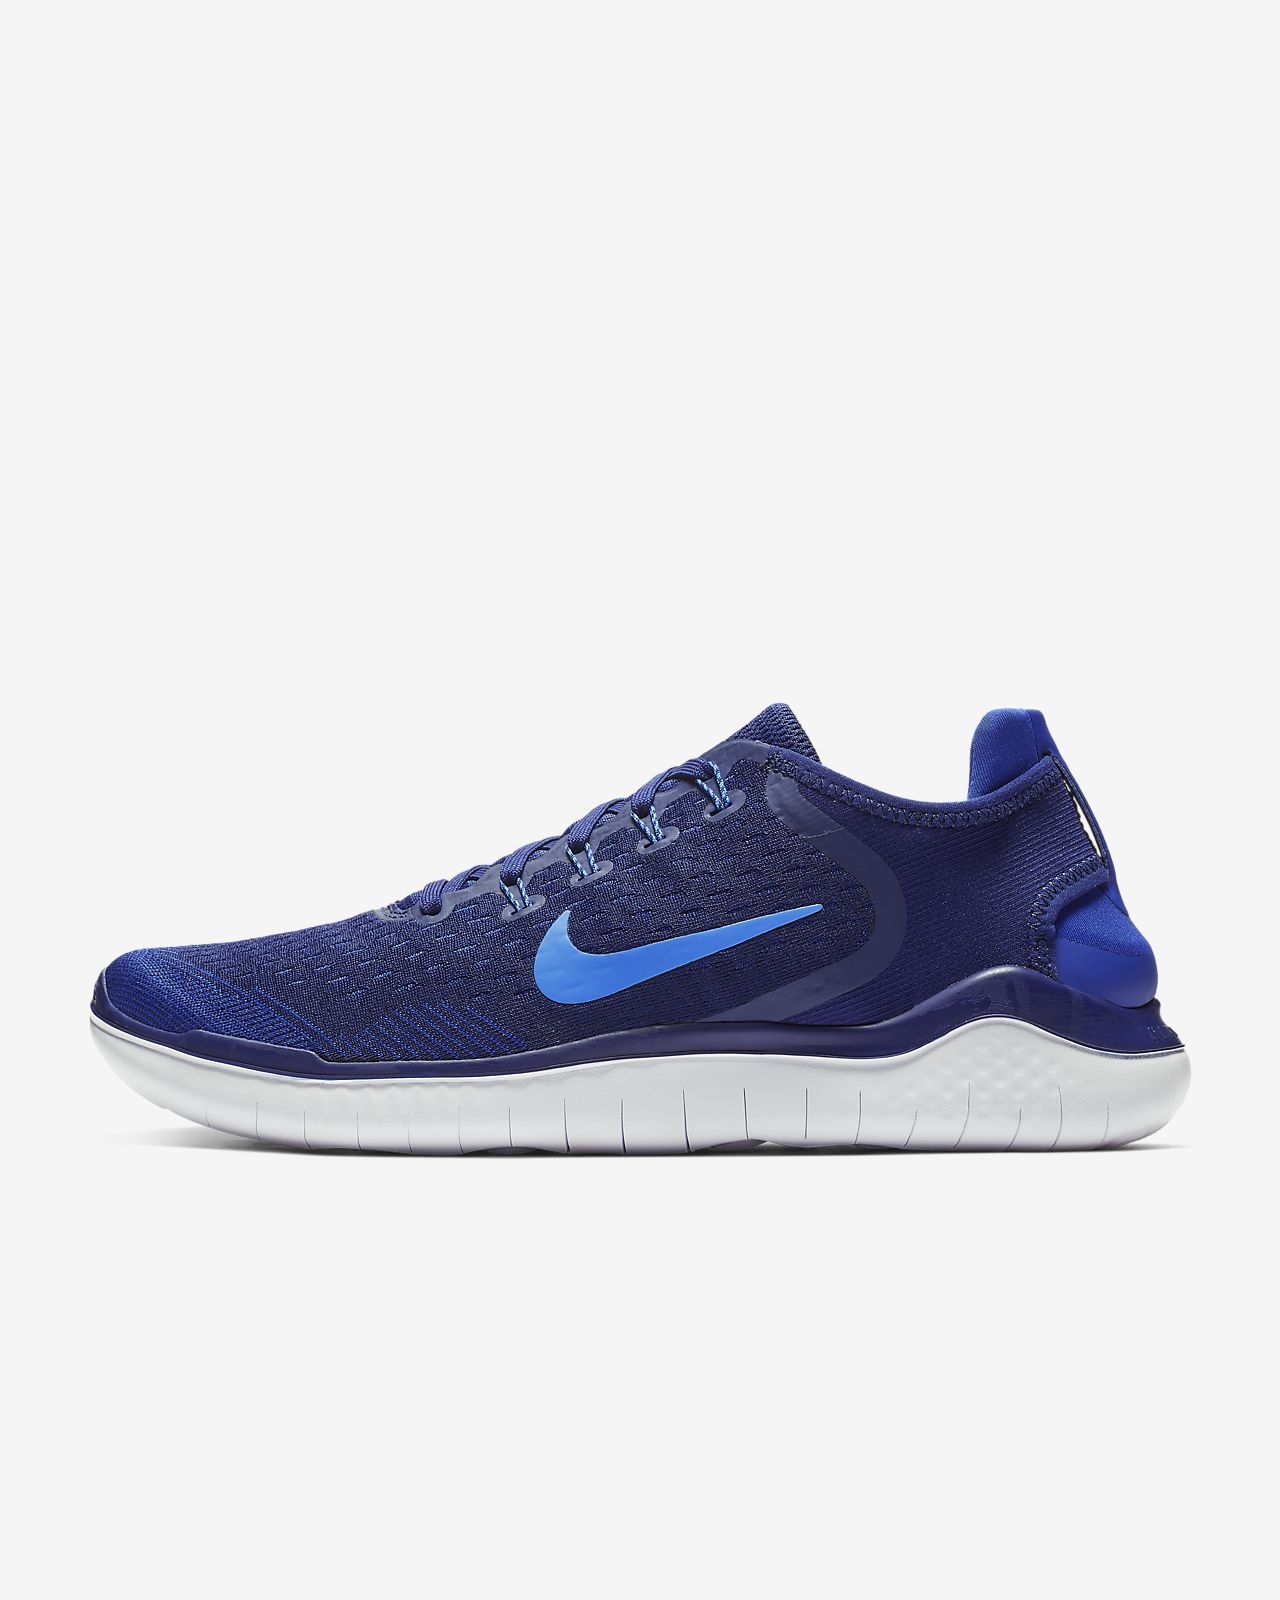 De Free Pour Homme Running Chaussure Fr Nike Rn 2018 dtwYTqB